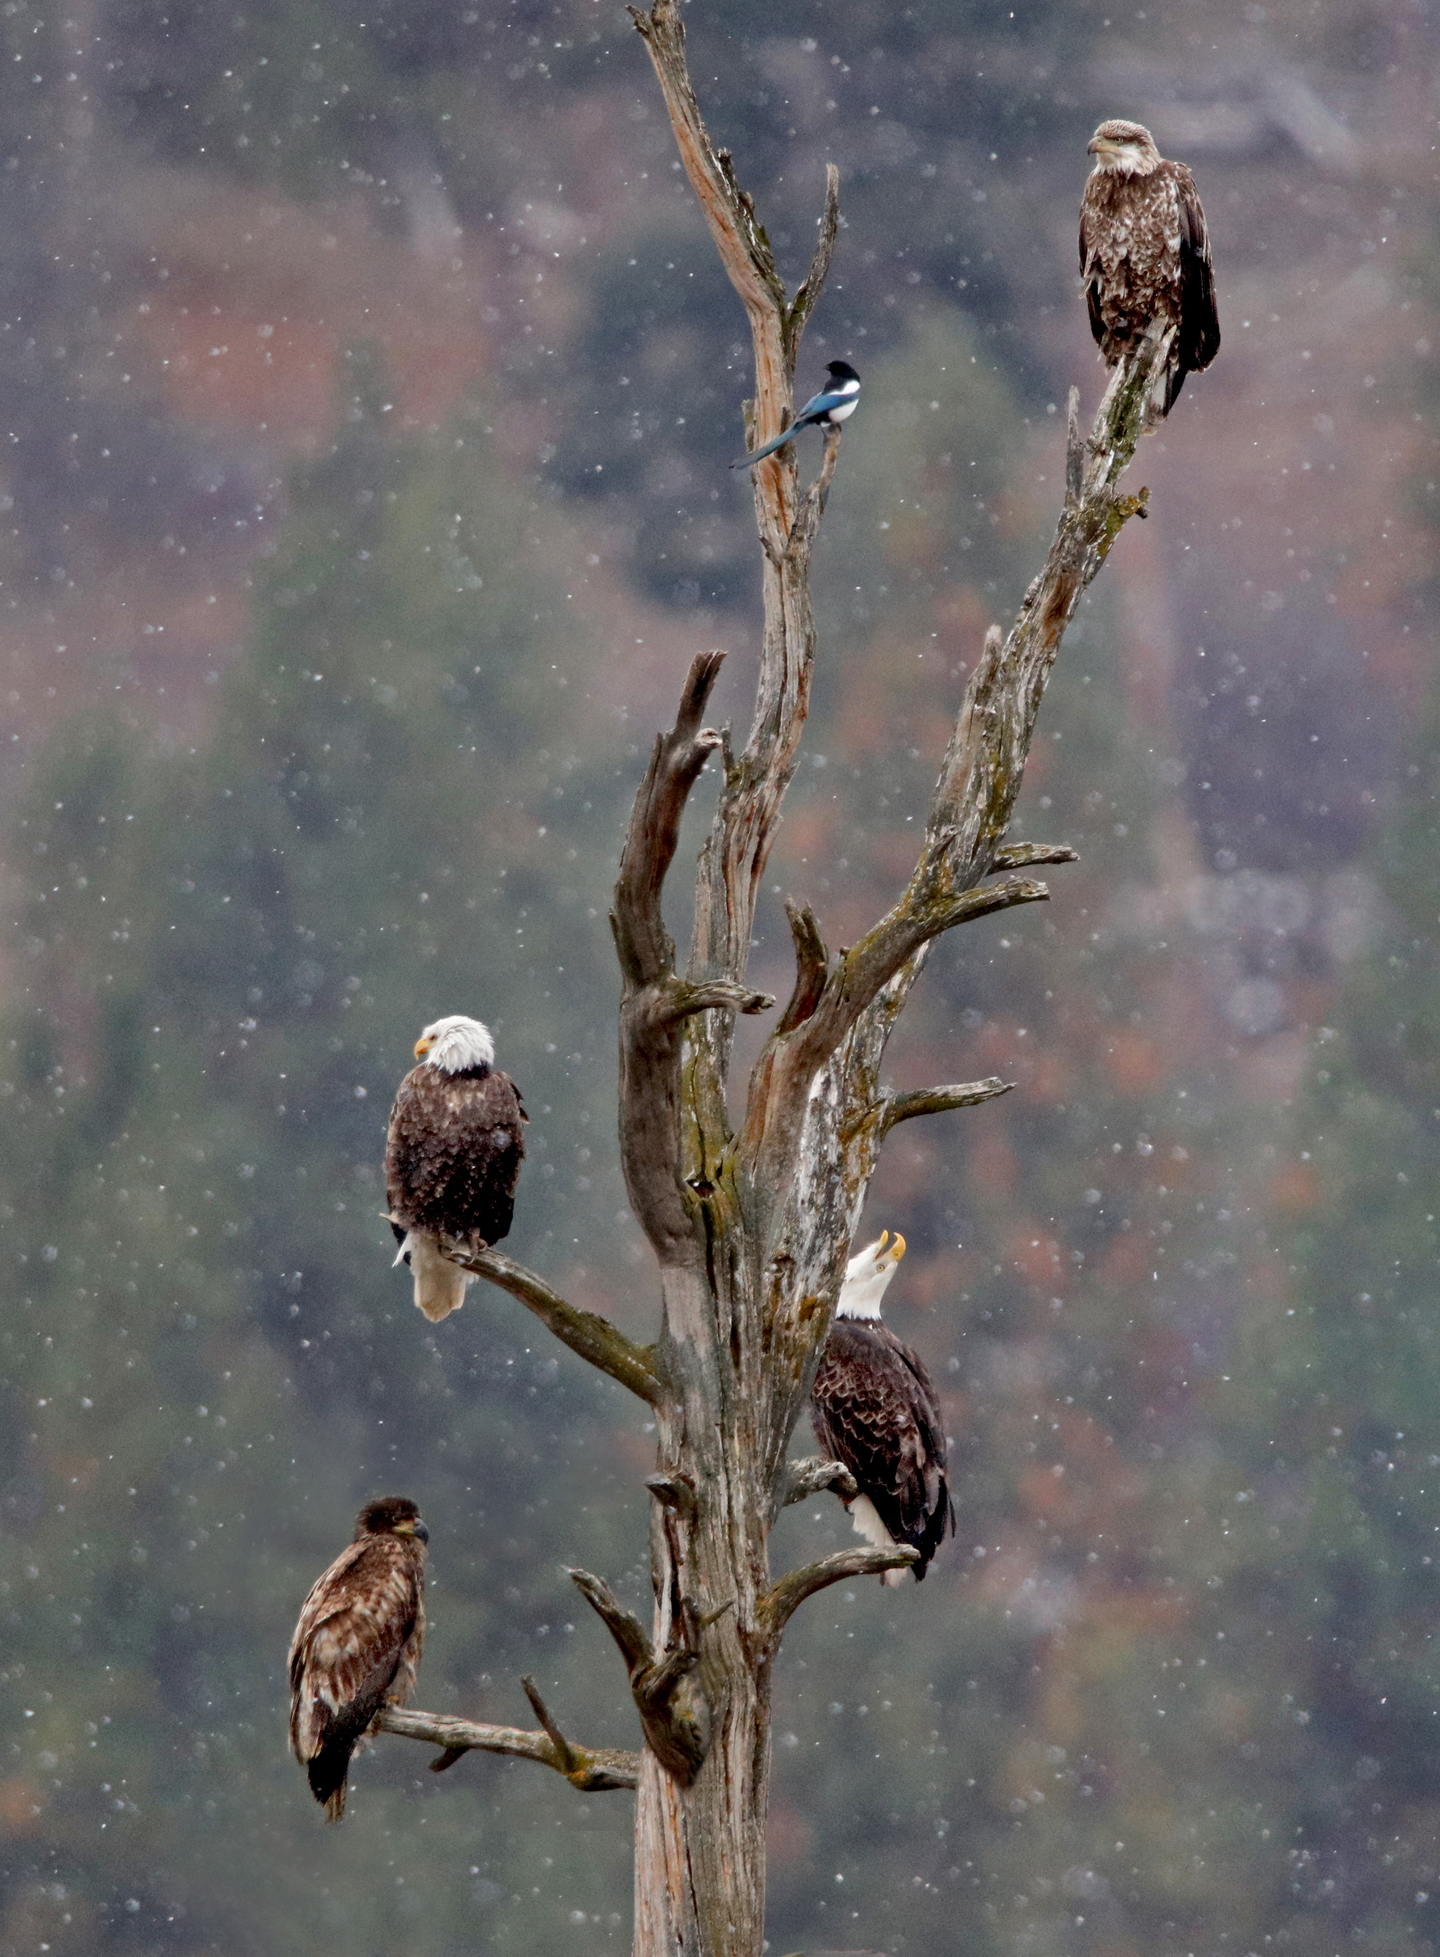 Four bald eagles - two adults, two juveniles and a black-billed magpie.